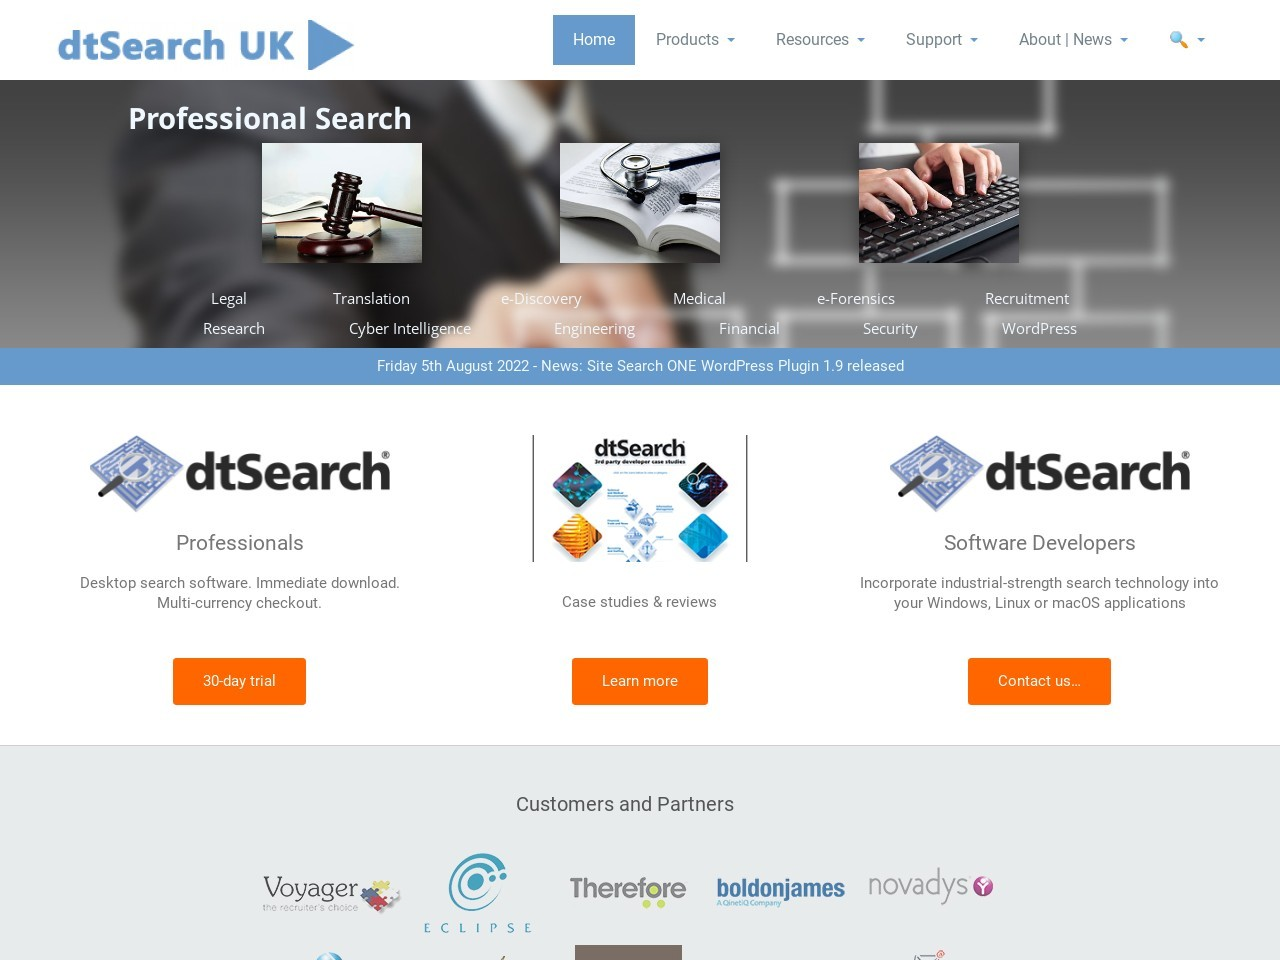 dtsearch.co.uk